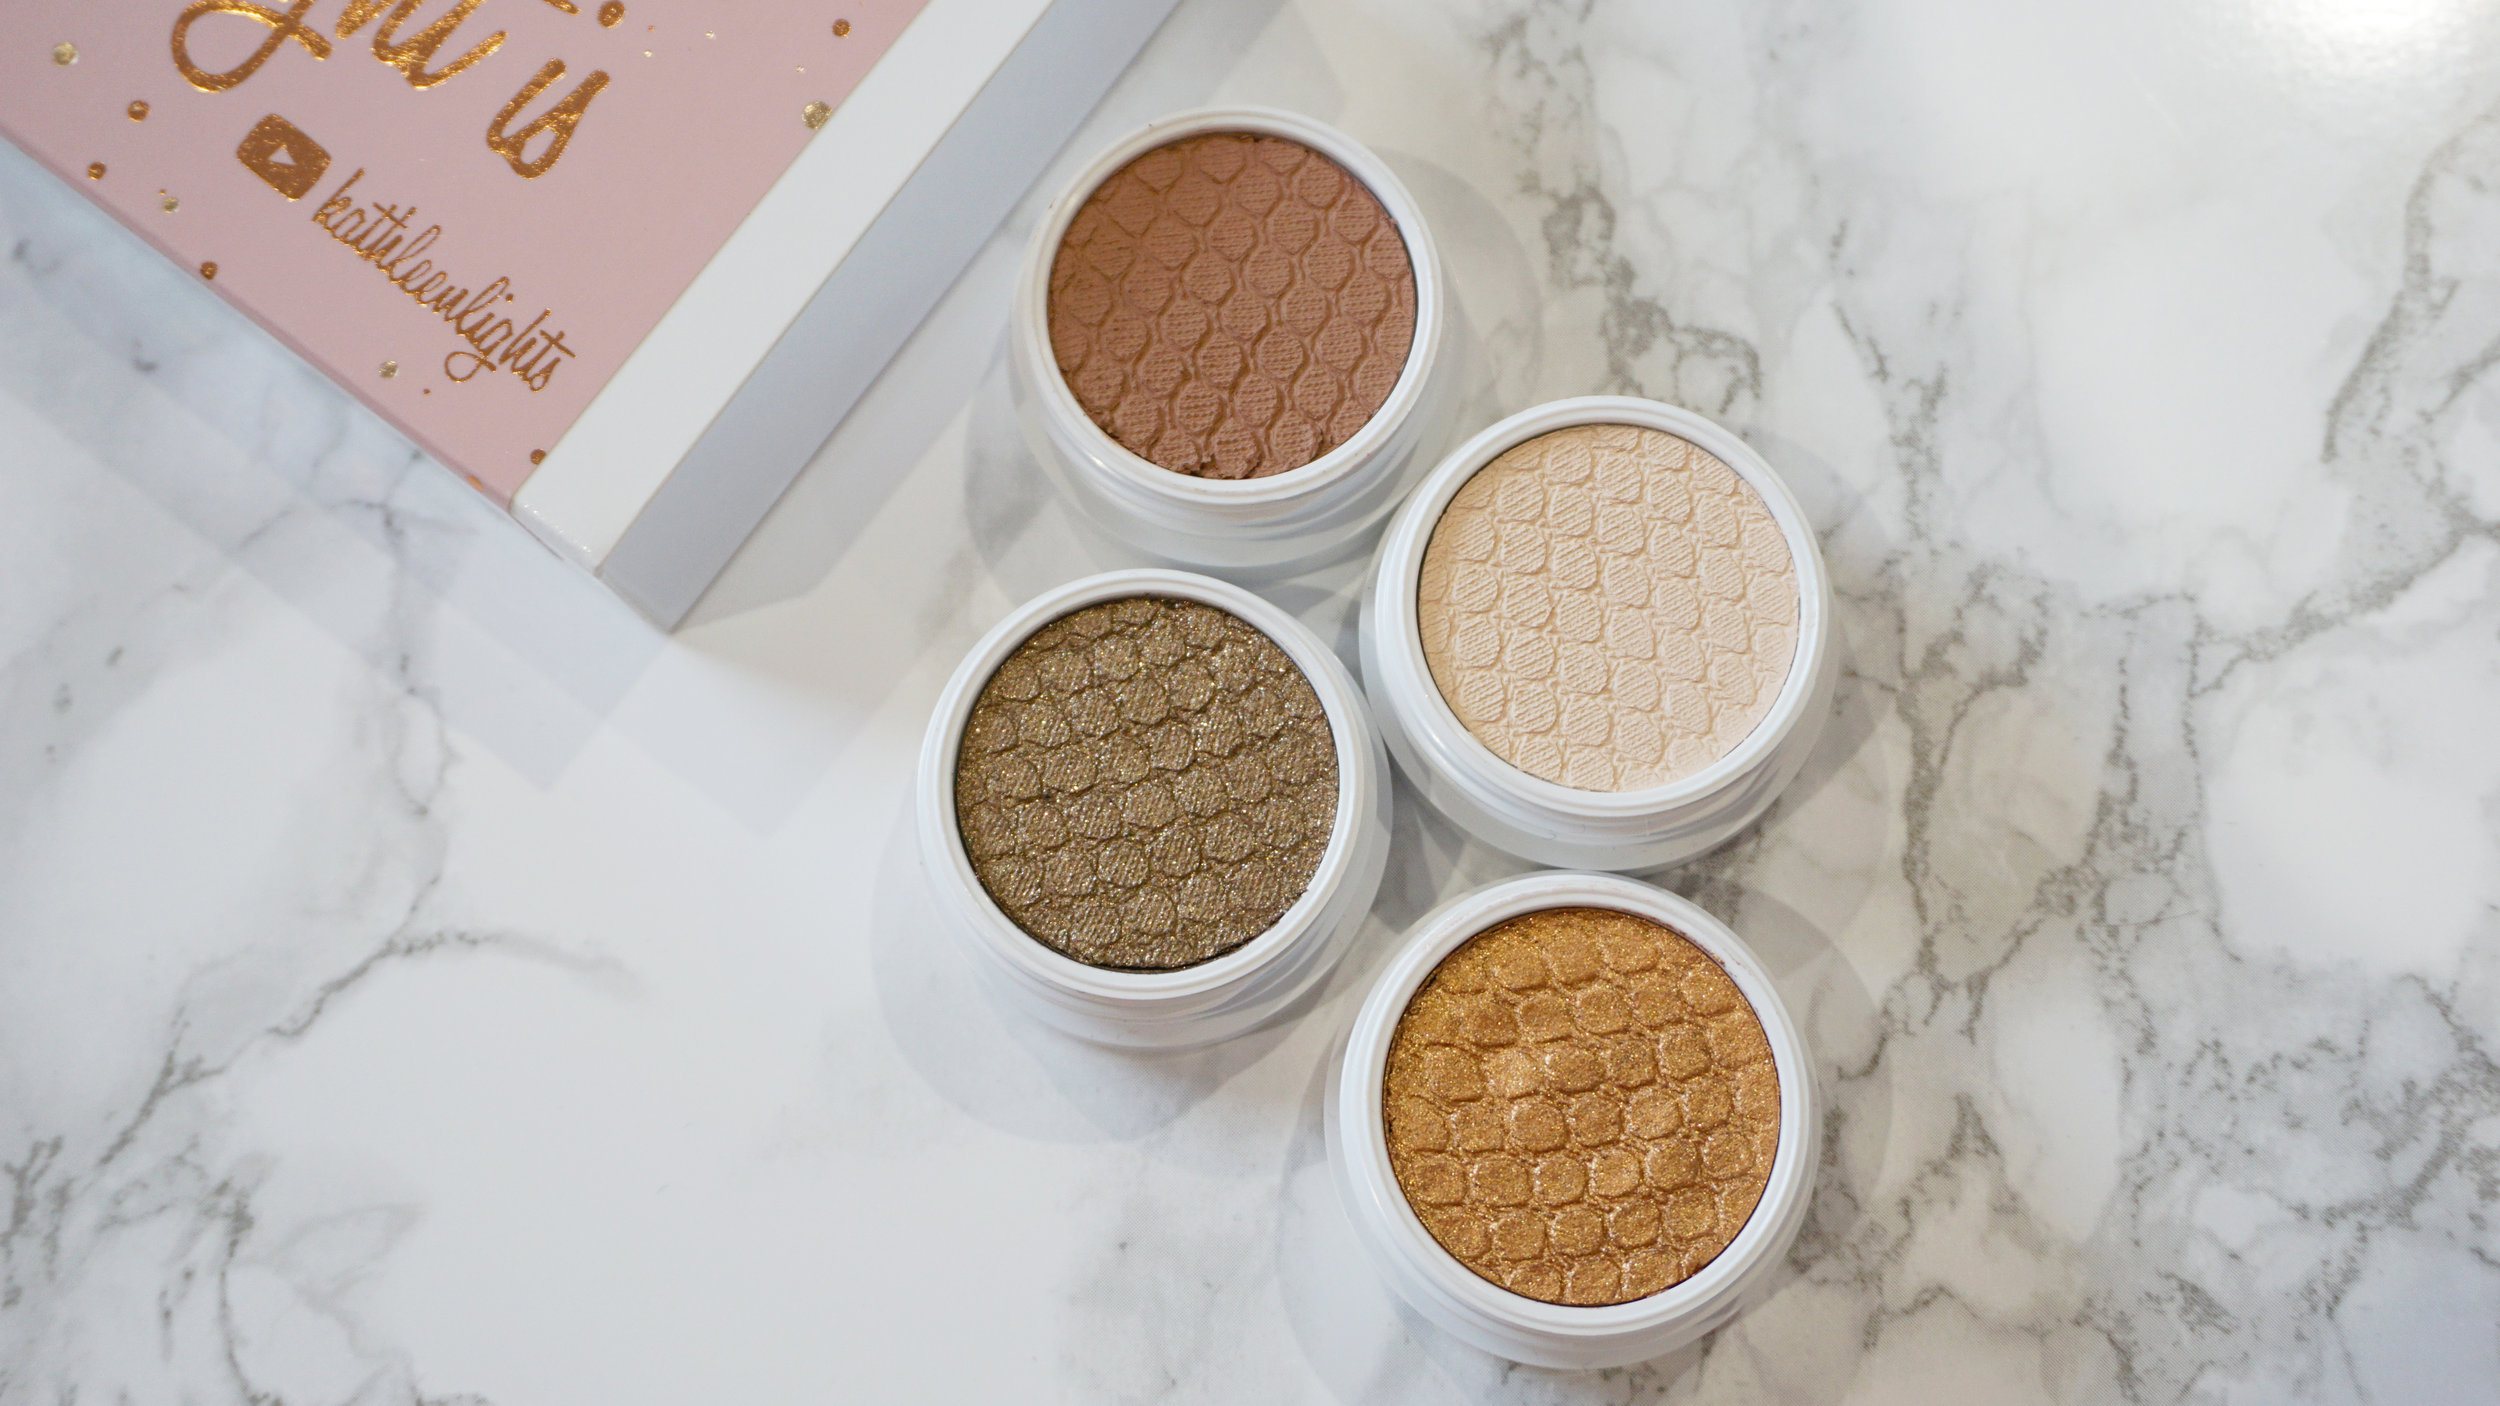 From top left clockwise: Cornelious, Glow, KathleenLights, and Blazed